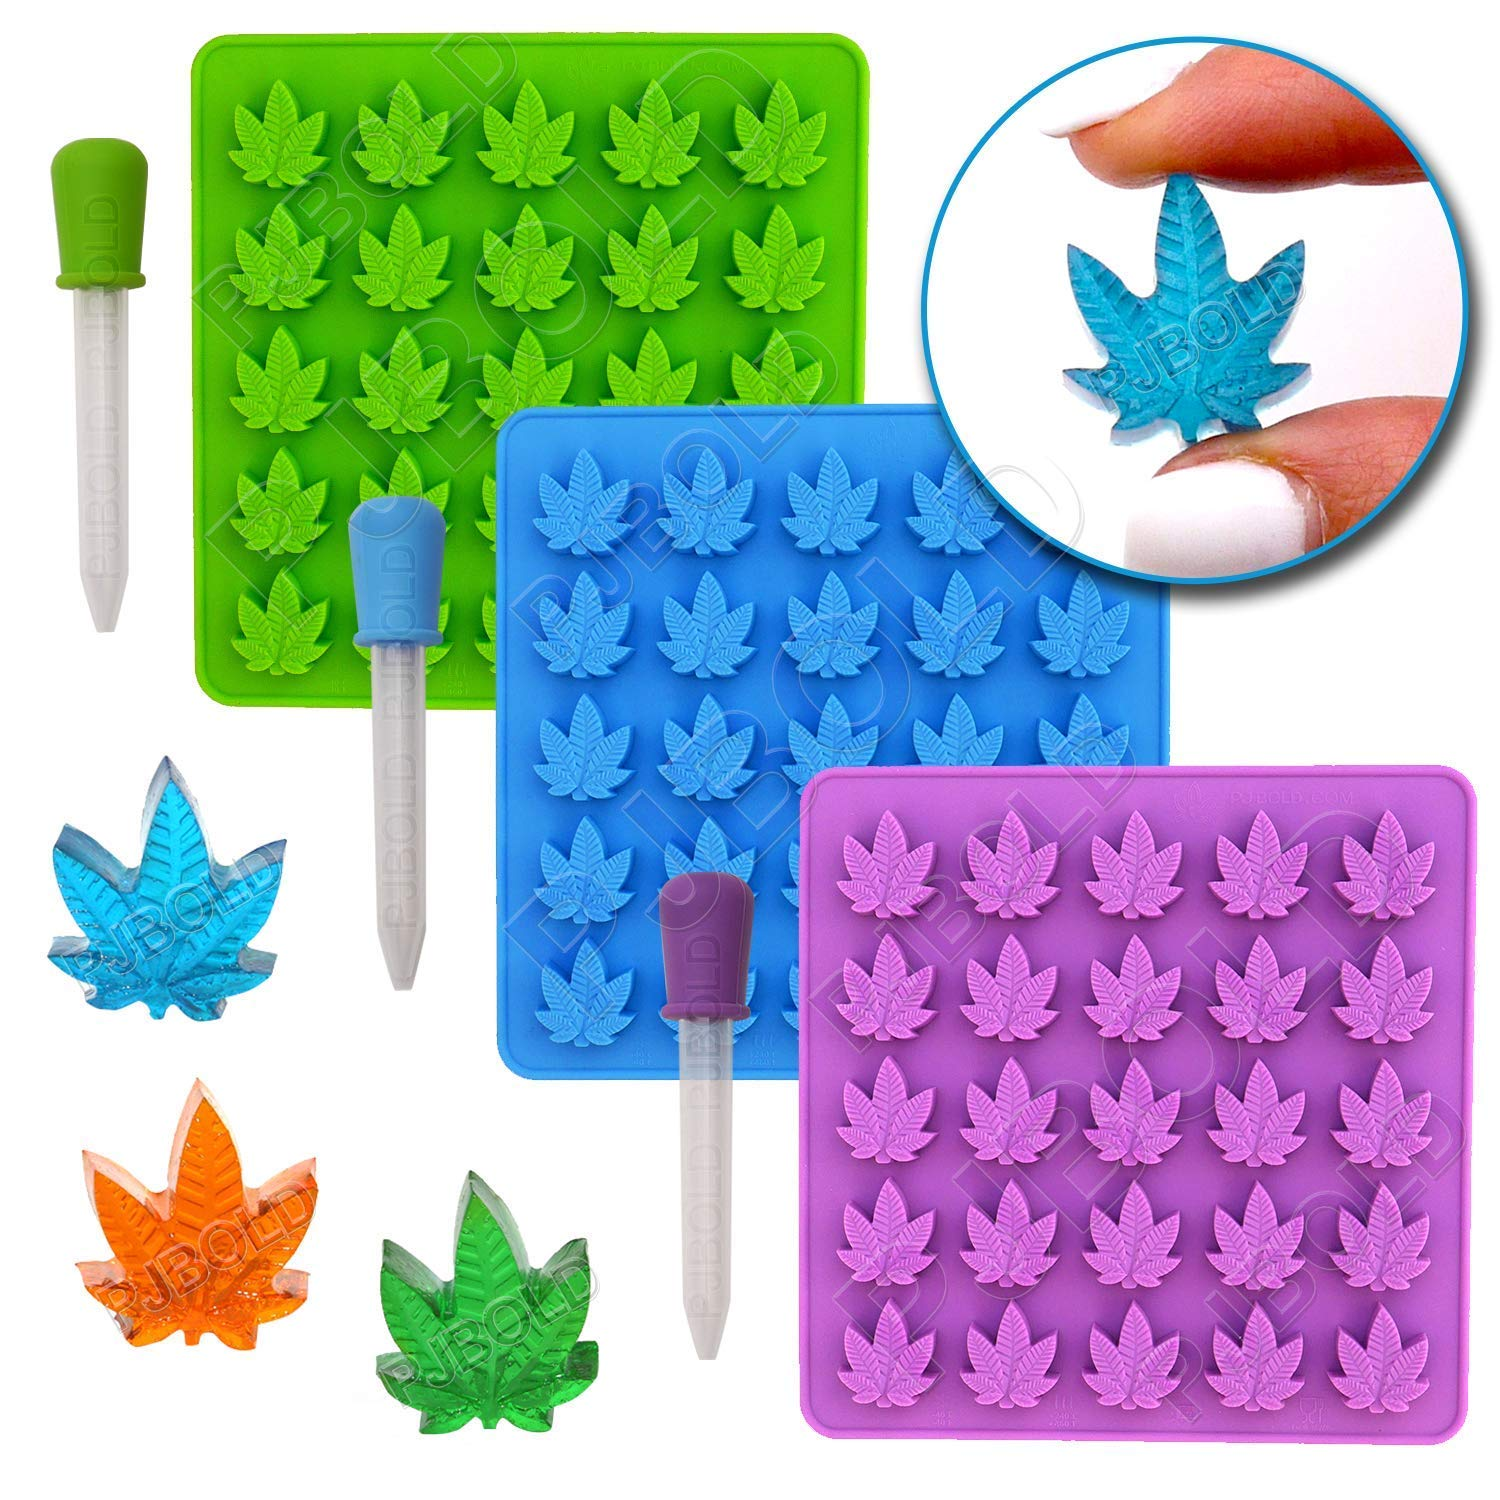 Gummy Leaf Silicone Candy Mold Party Novelty Gift - 3 Pack by PJ Bold